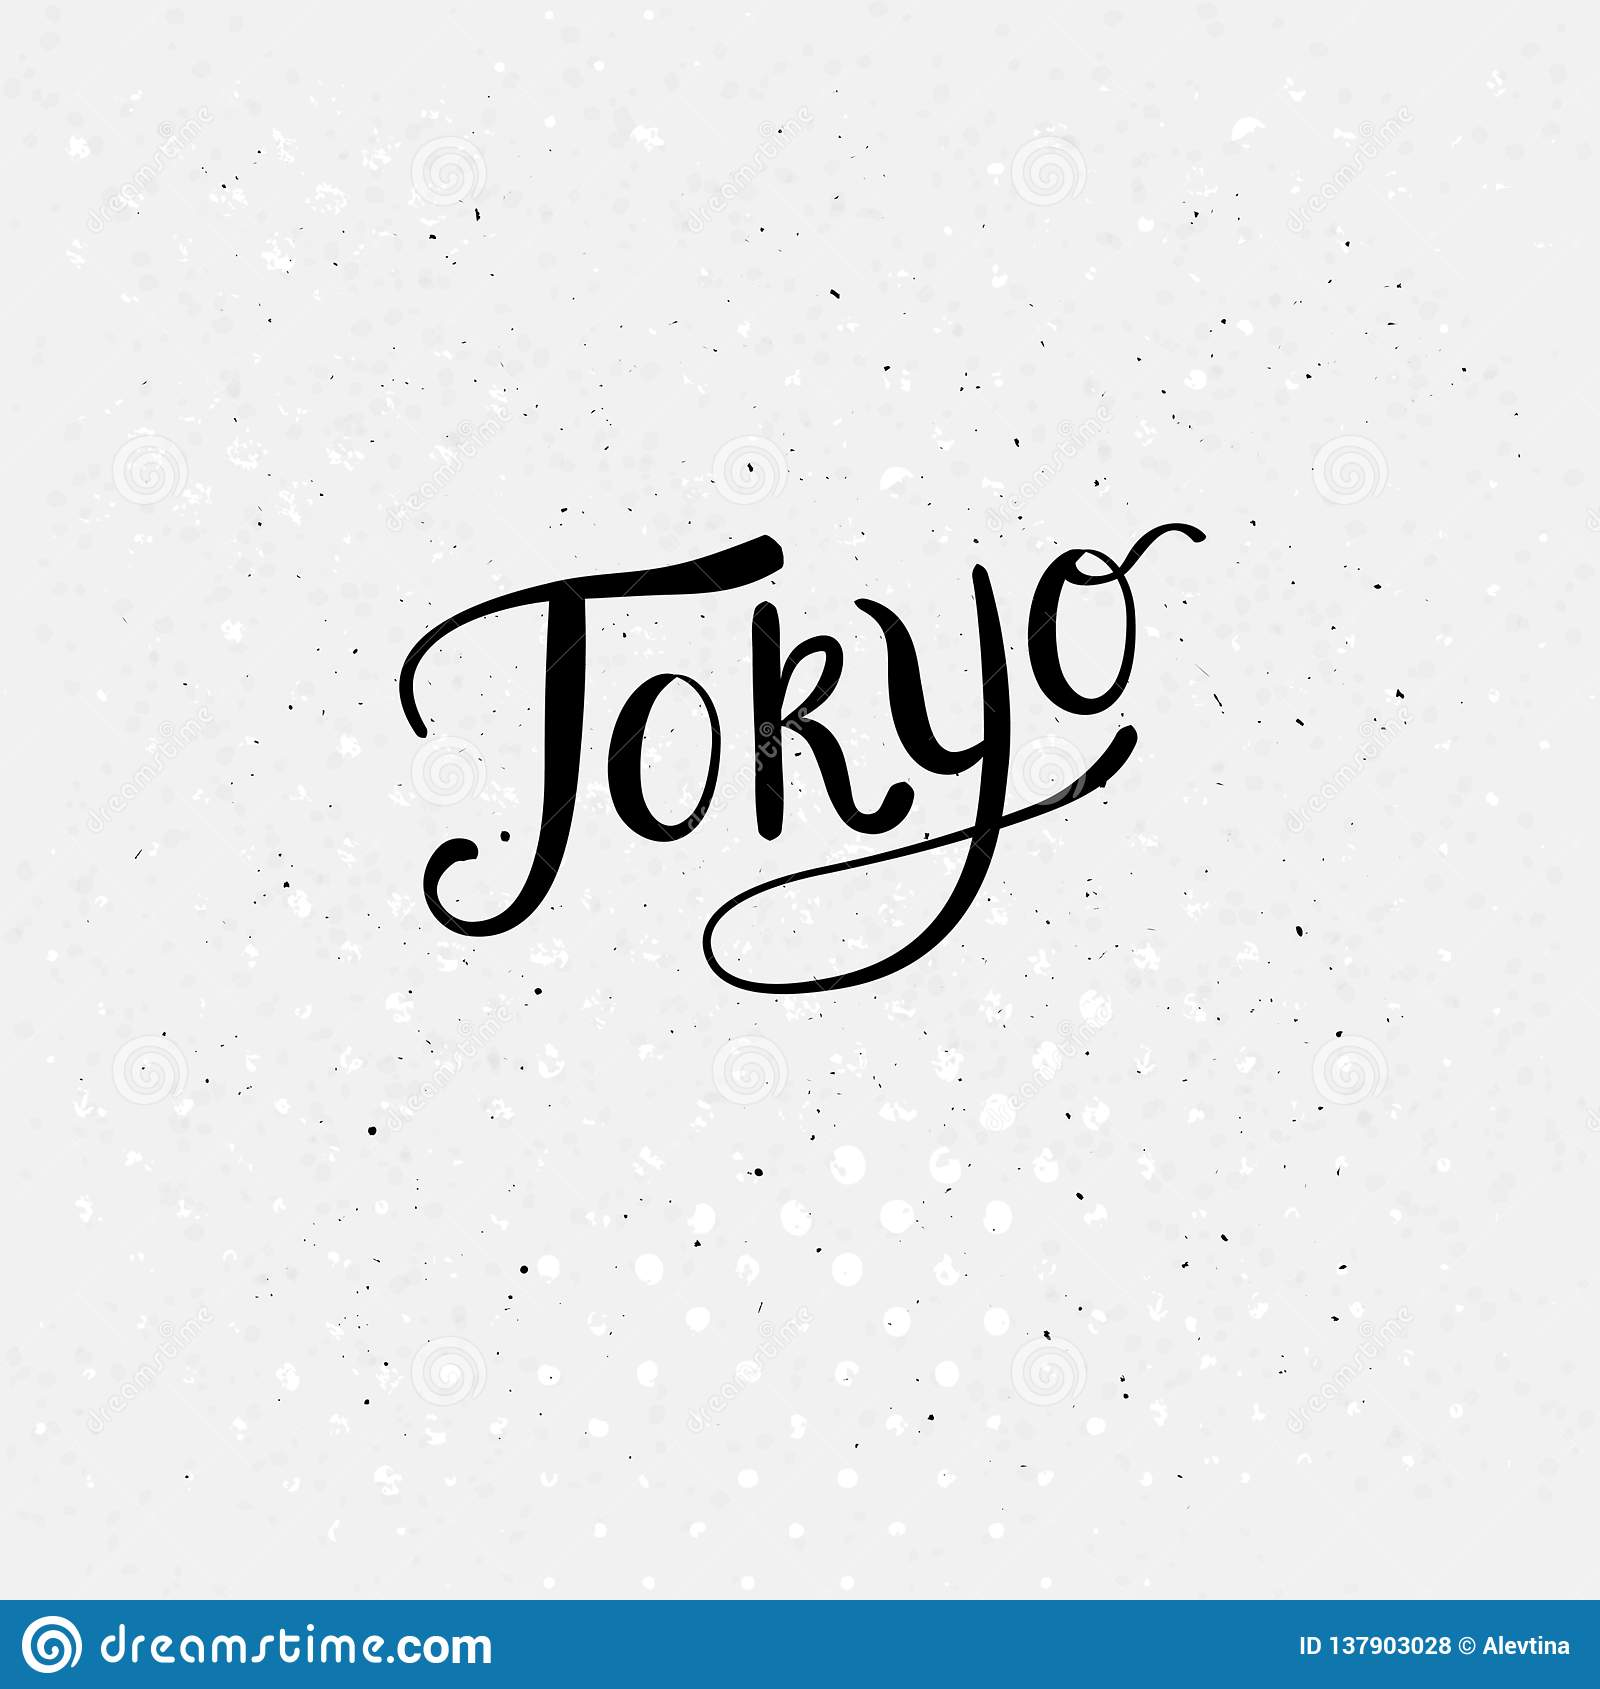 Conceptual Tokyo Message in a Simple Black Text Style.